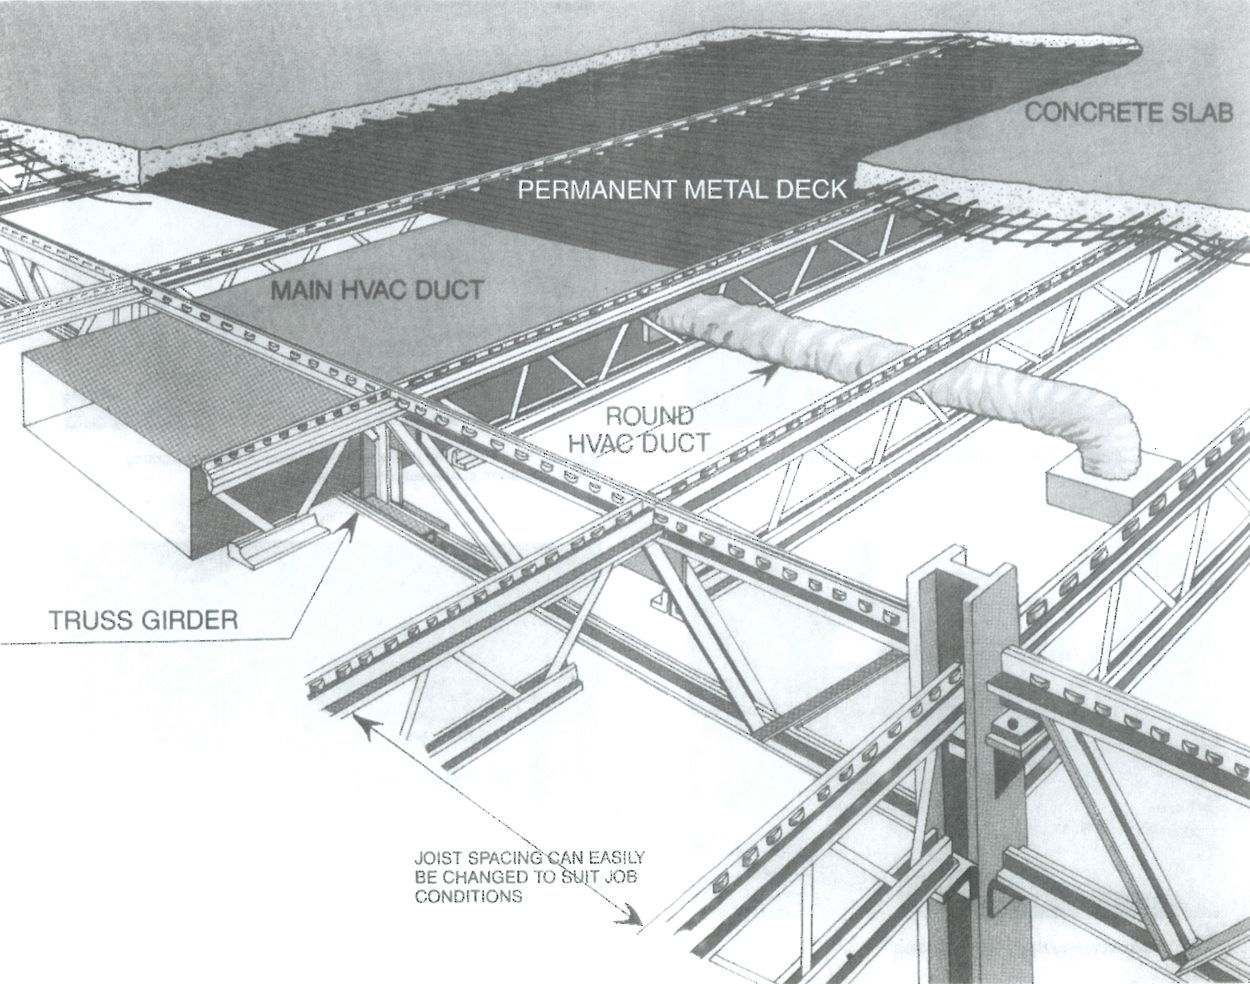 truss style diagram dimarzio ultra jazz wiring diagrams steel girder plakata e fundit pinterest